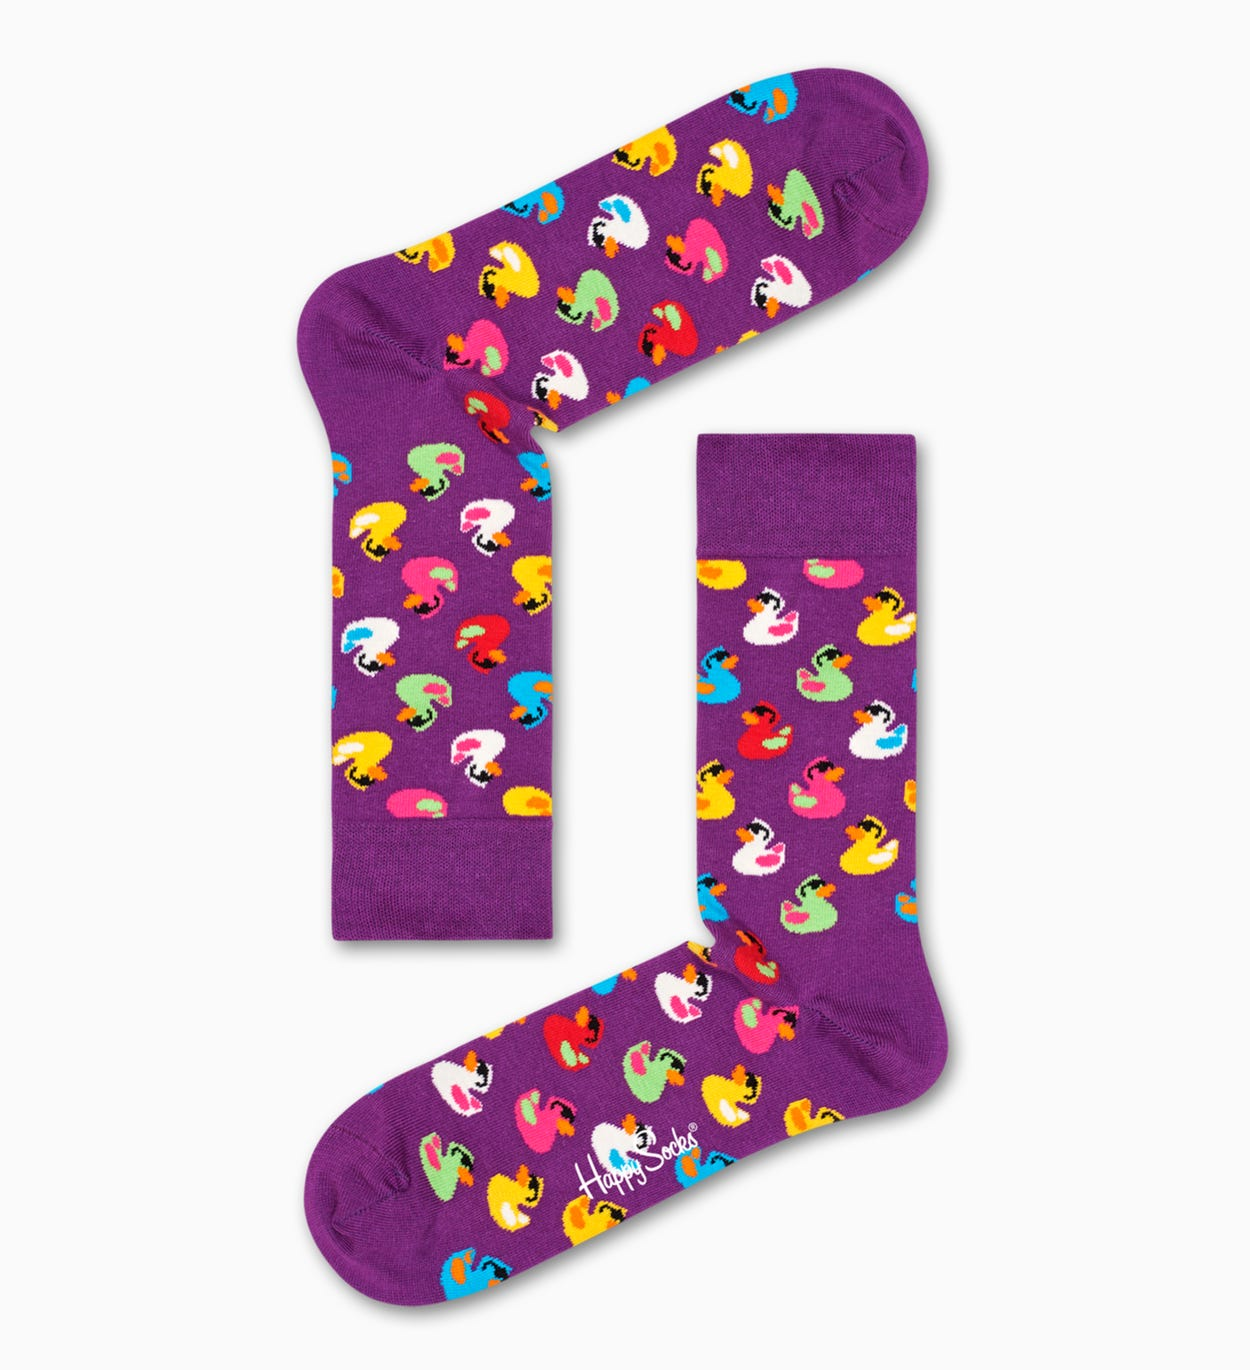 Patterned Purple Socks: Rubber Duck | Happy Socks